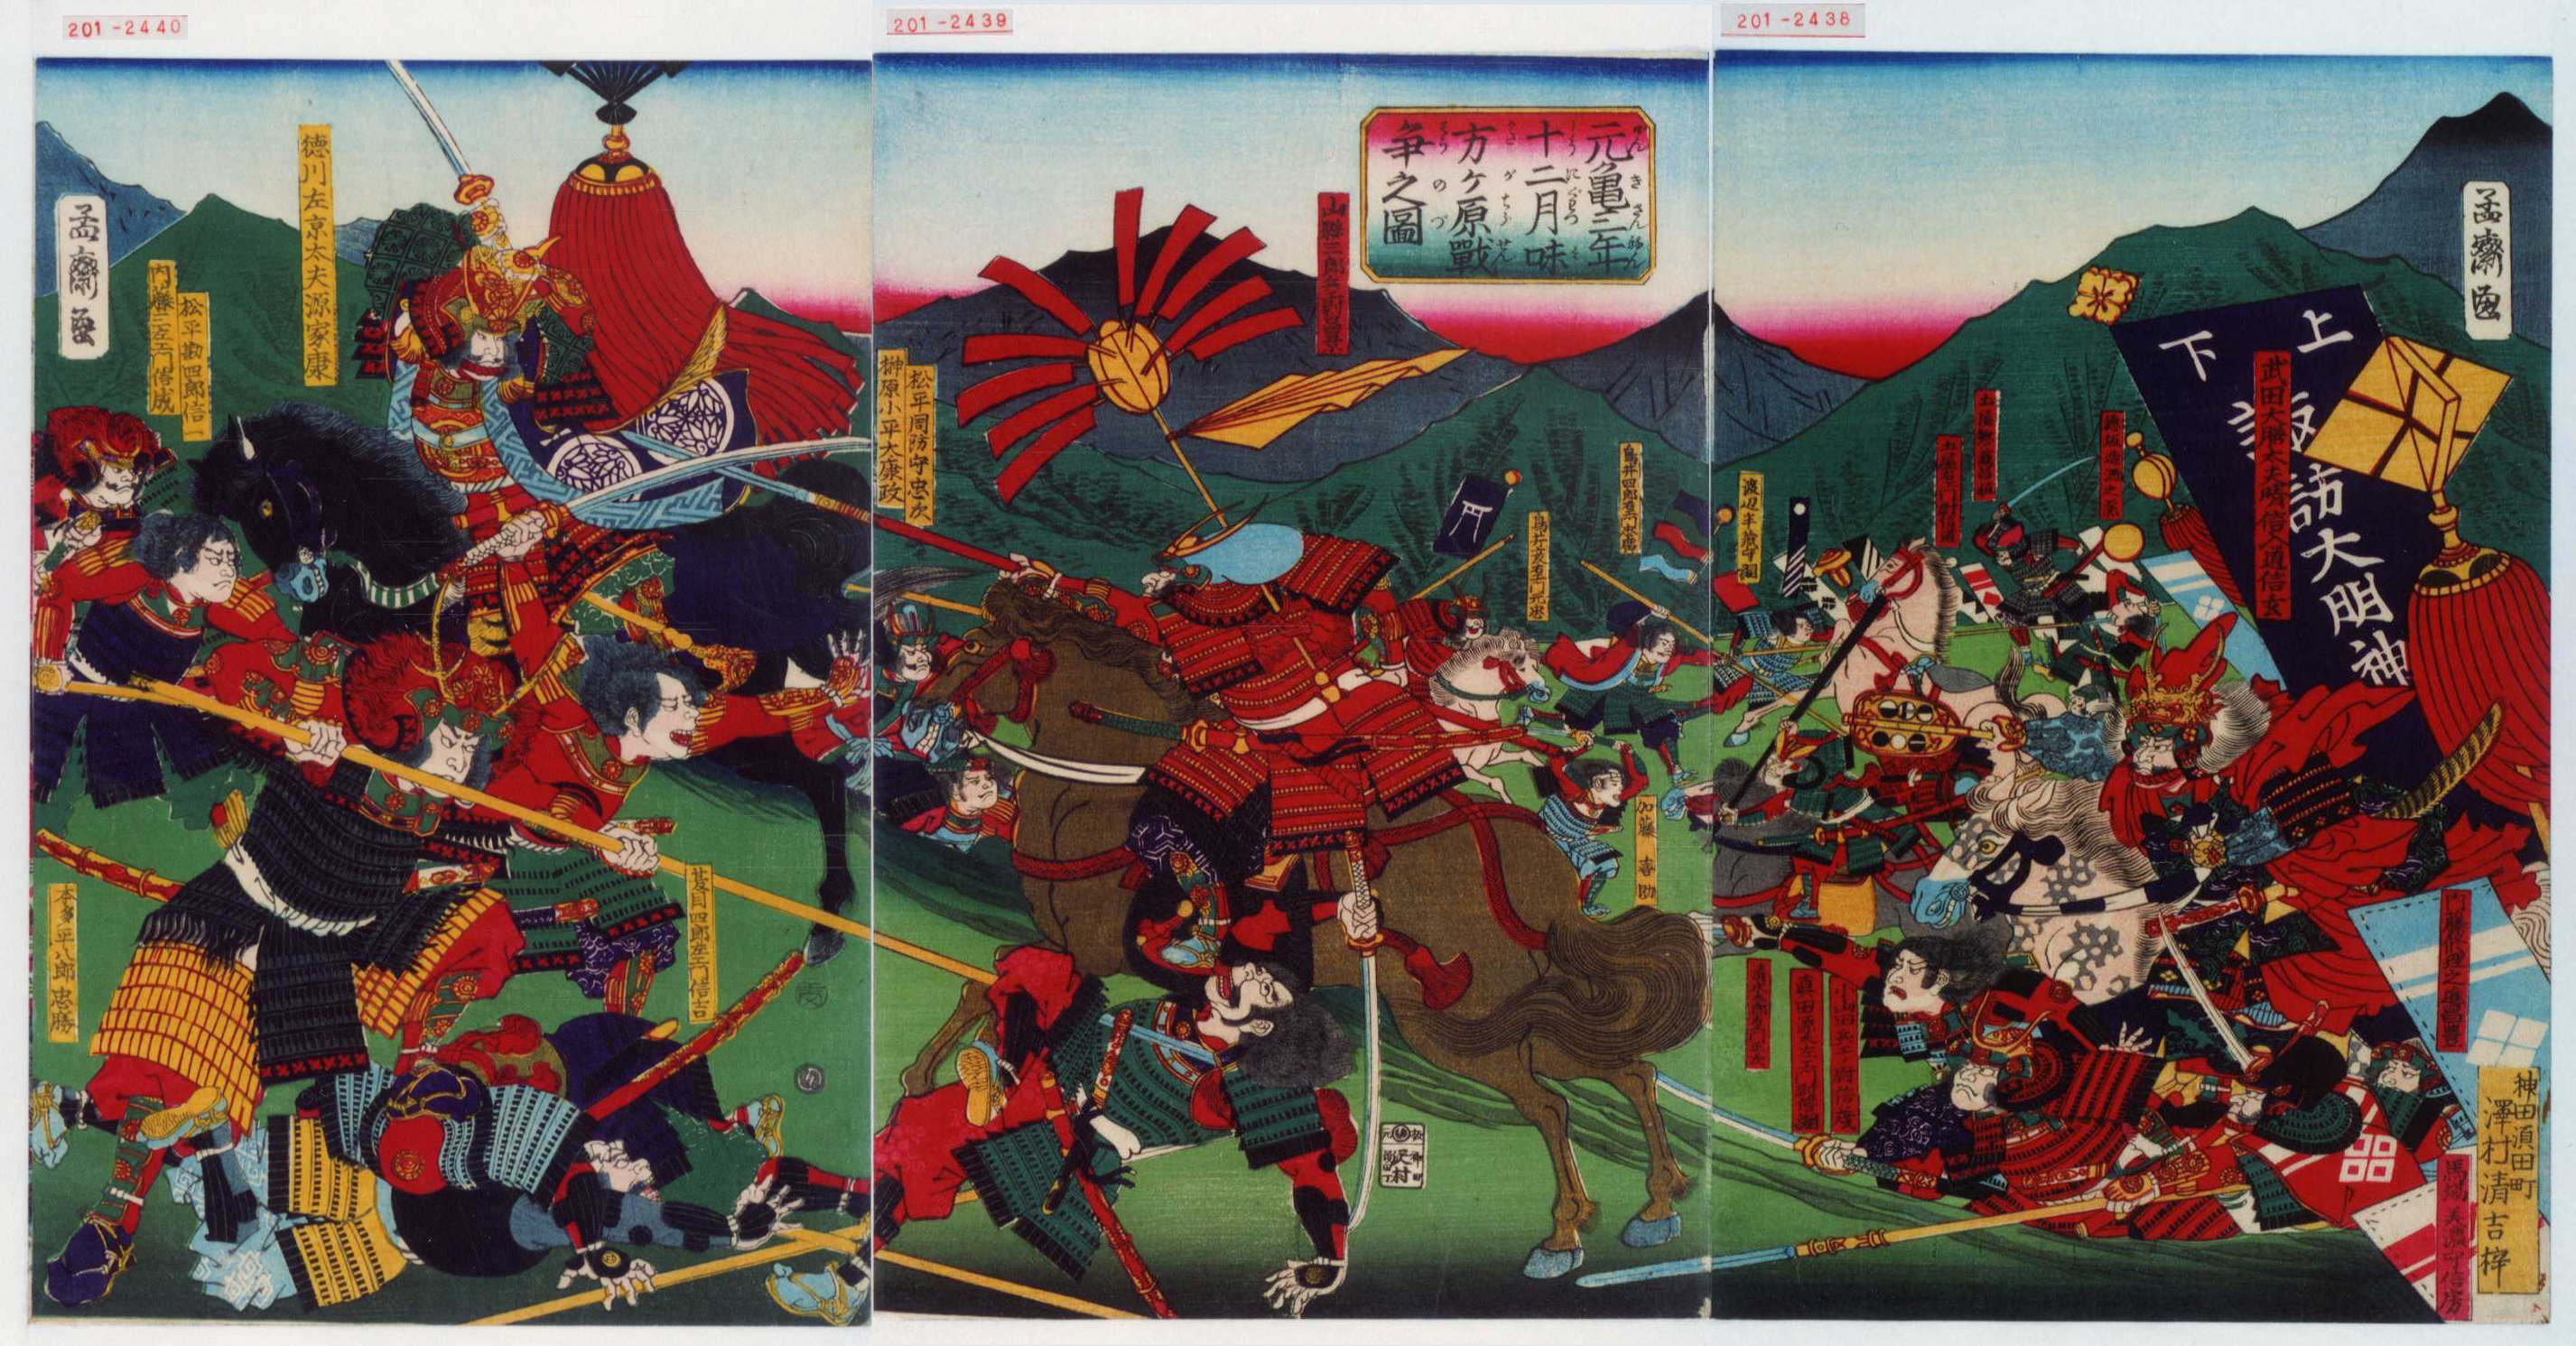 https://upload.wikimedia.org/wikipedia/commons/e/eb/Battle_of_Mikatagahara.jpg